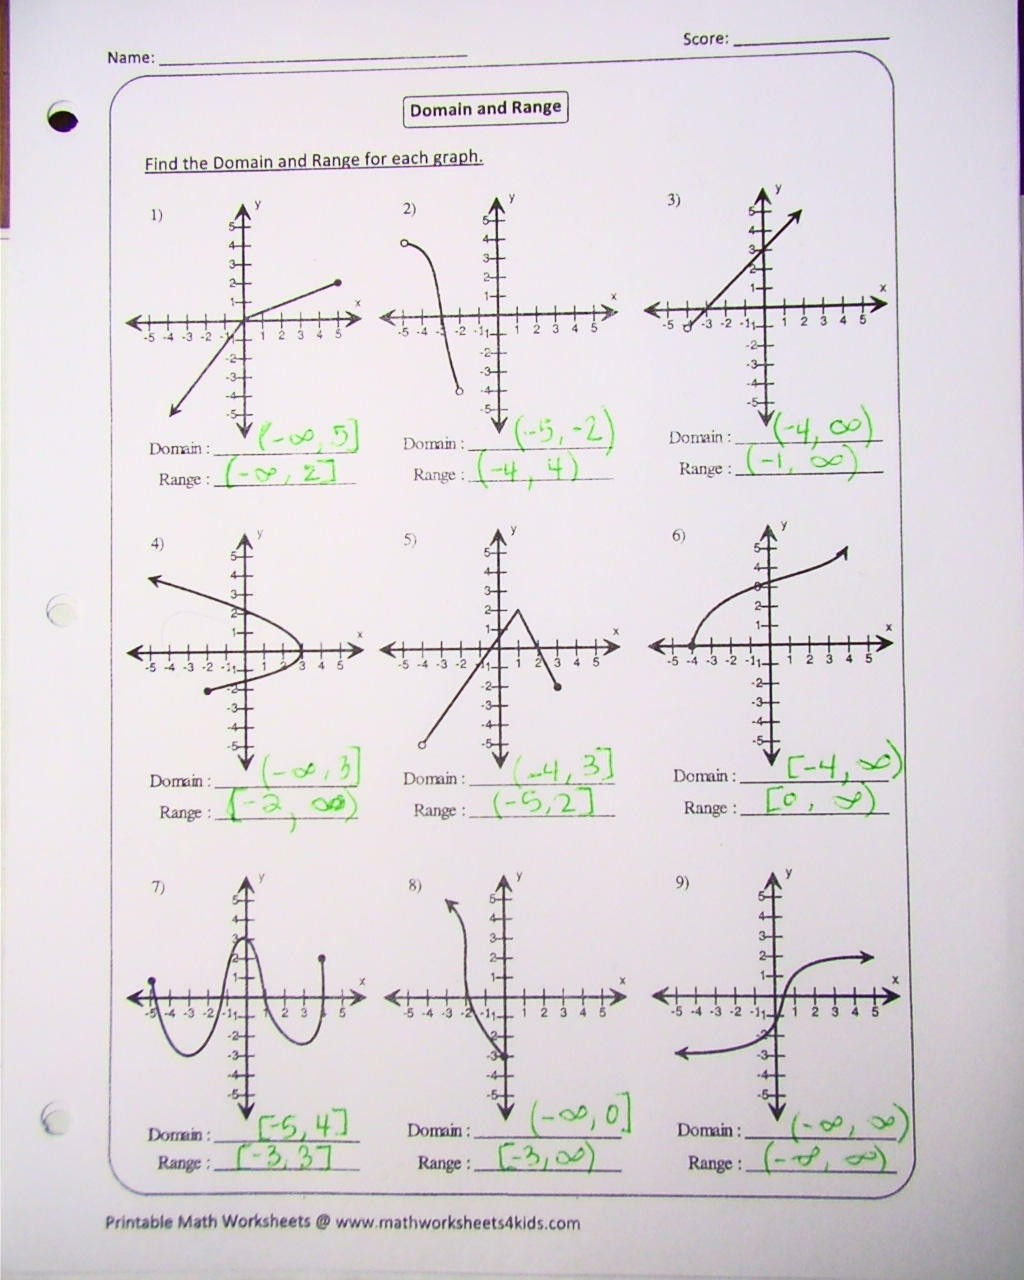 Worksheets Domain And Range Worksheet honors precalc homework determine domain and range 6 problems